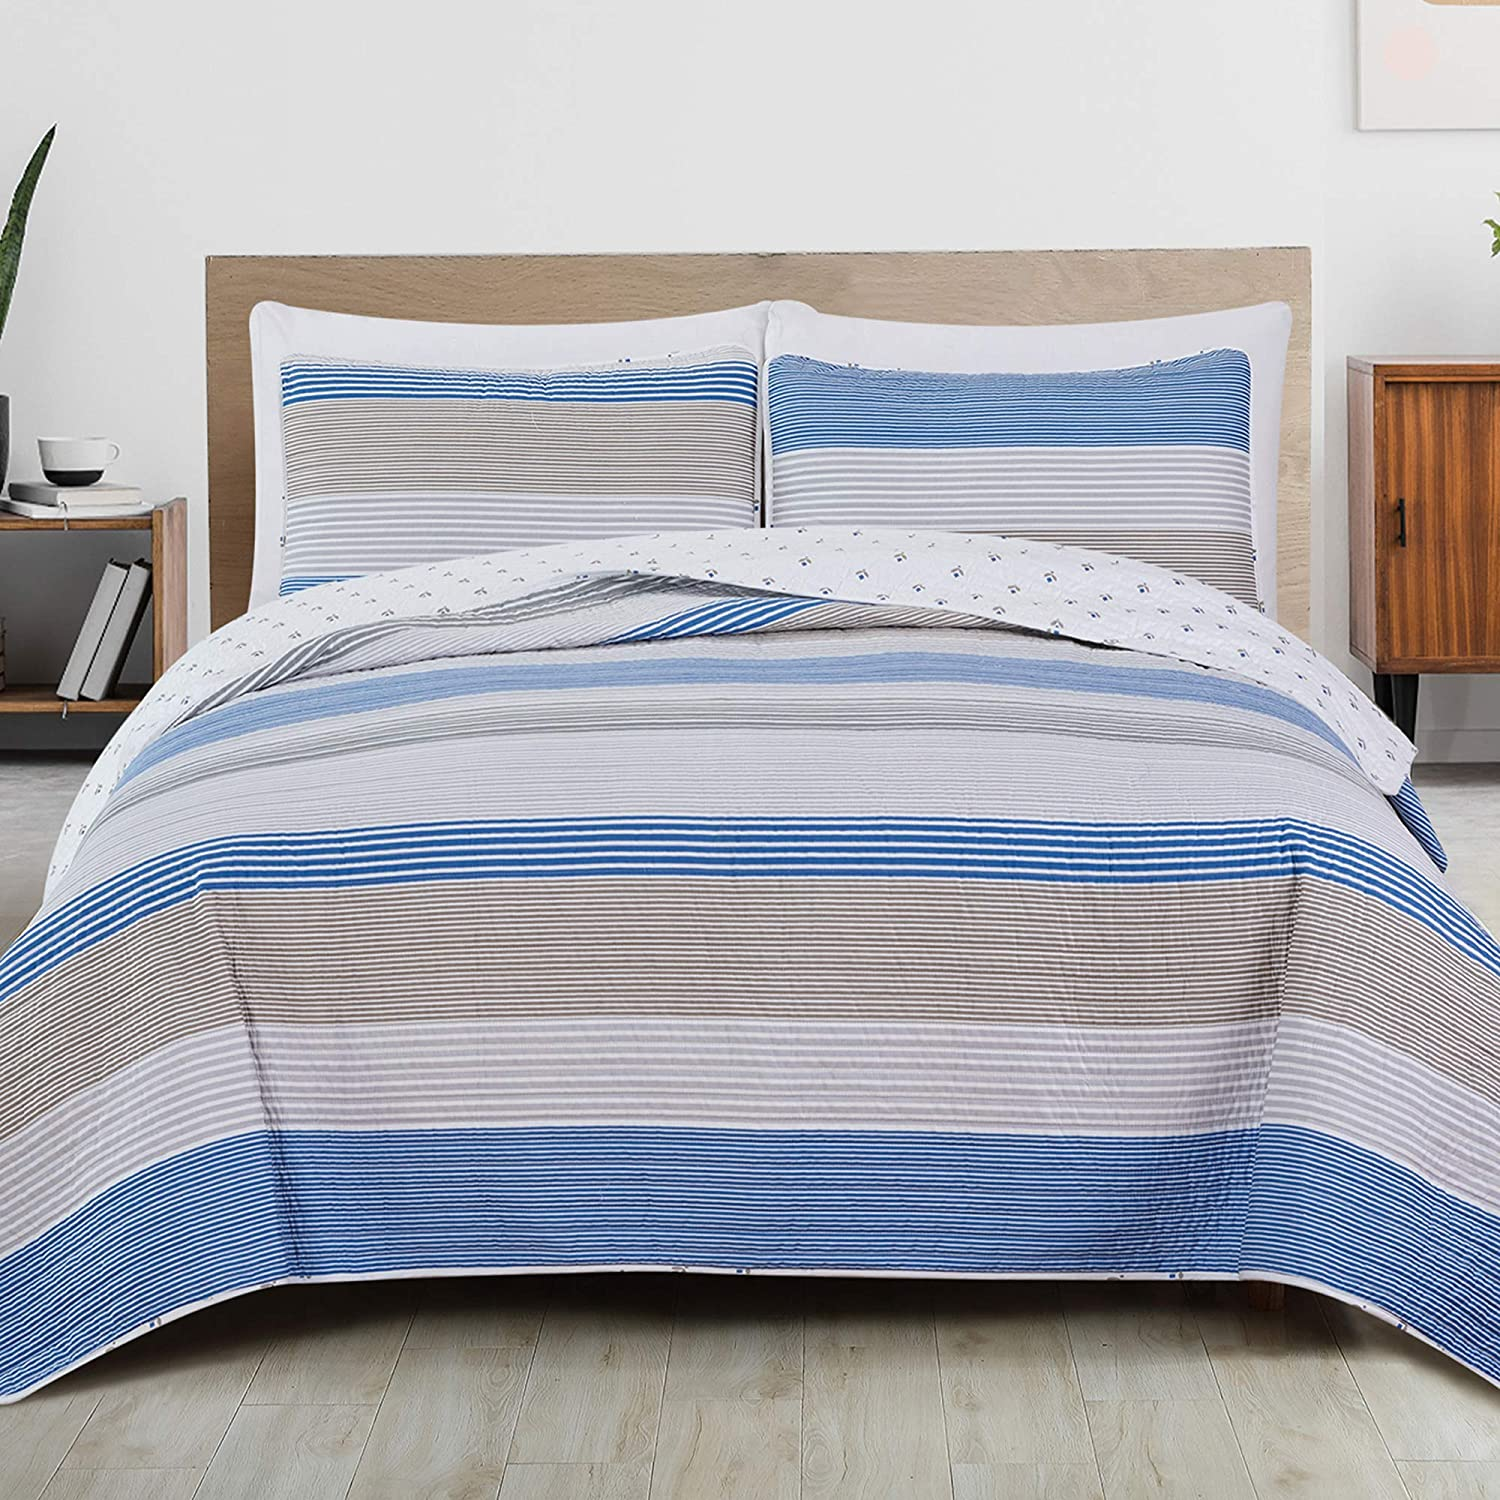 3-Piece Reversible Modern Striped Quilt with 2 Shams. All-Season Bedspread with Blue and Taupe Stripes. Bryce Collection (Full / Queen)